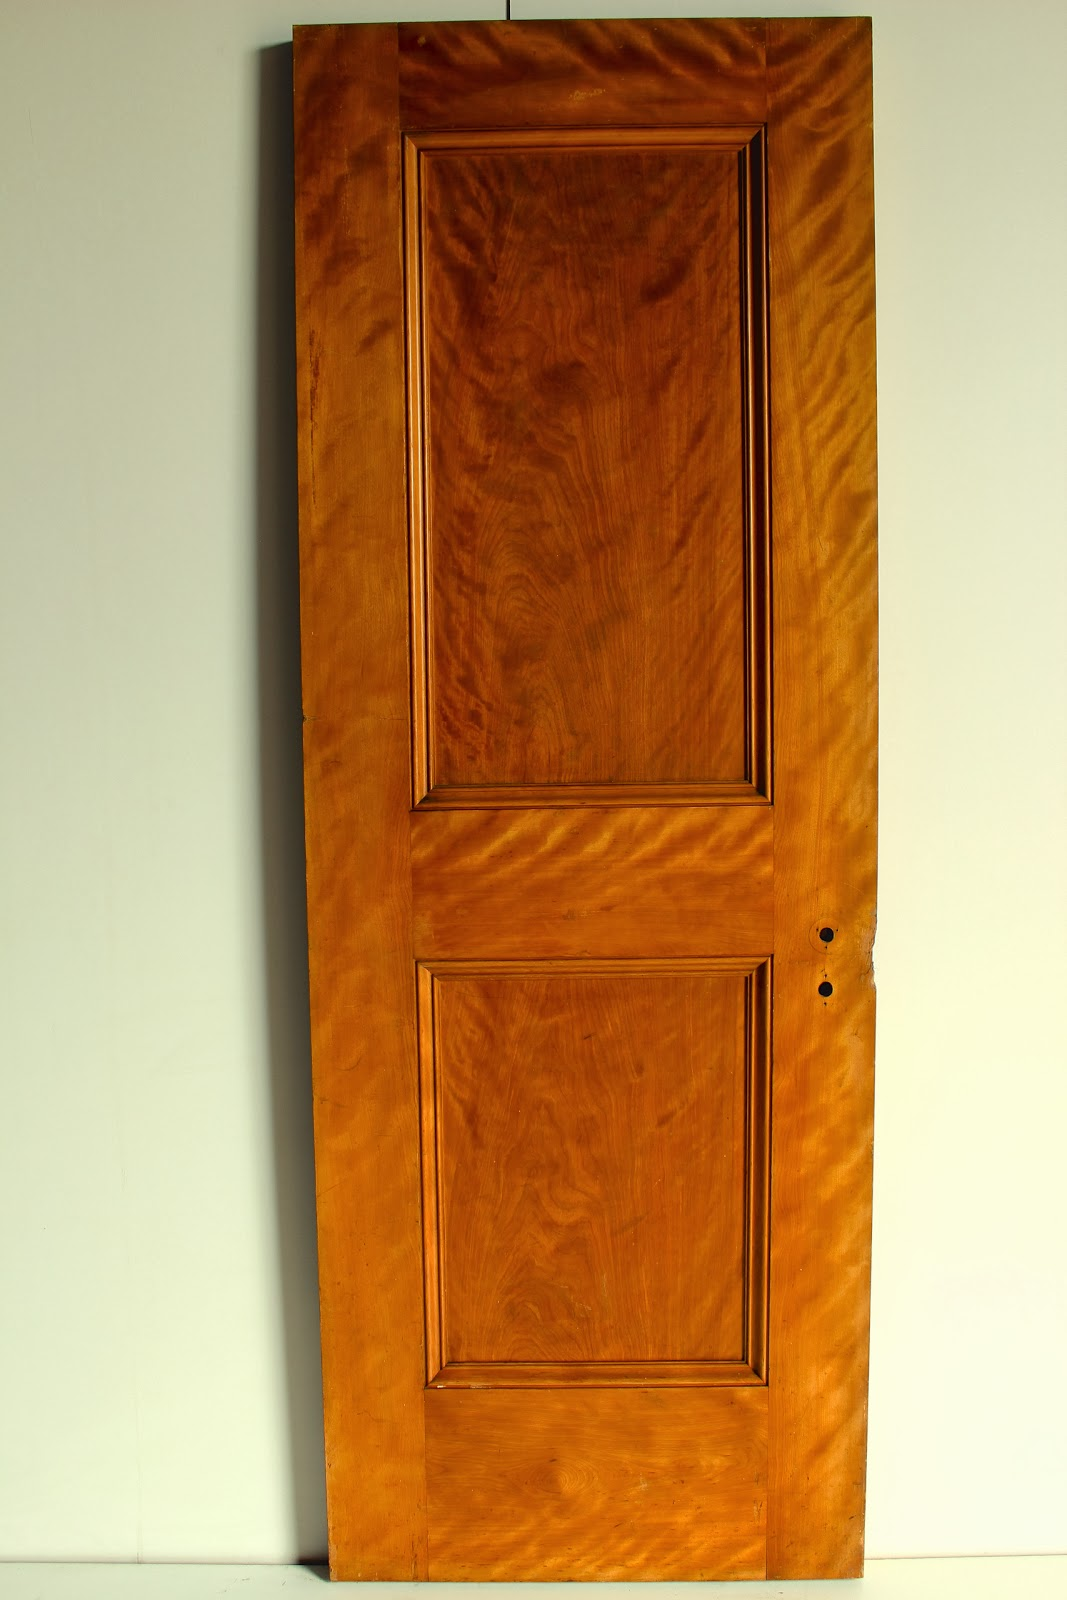 Curley Maple Paneled Doors Curley Maple Paneled Doors : paneled doors - pezcame.com